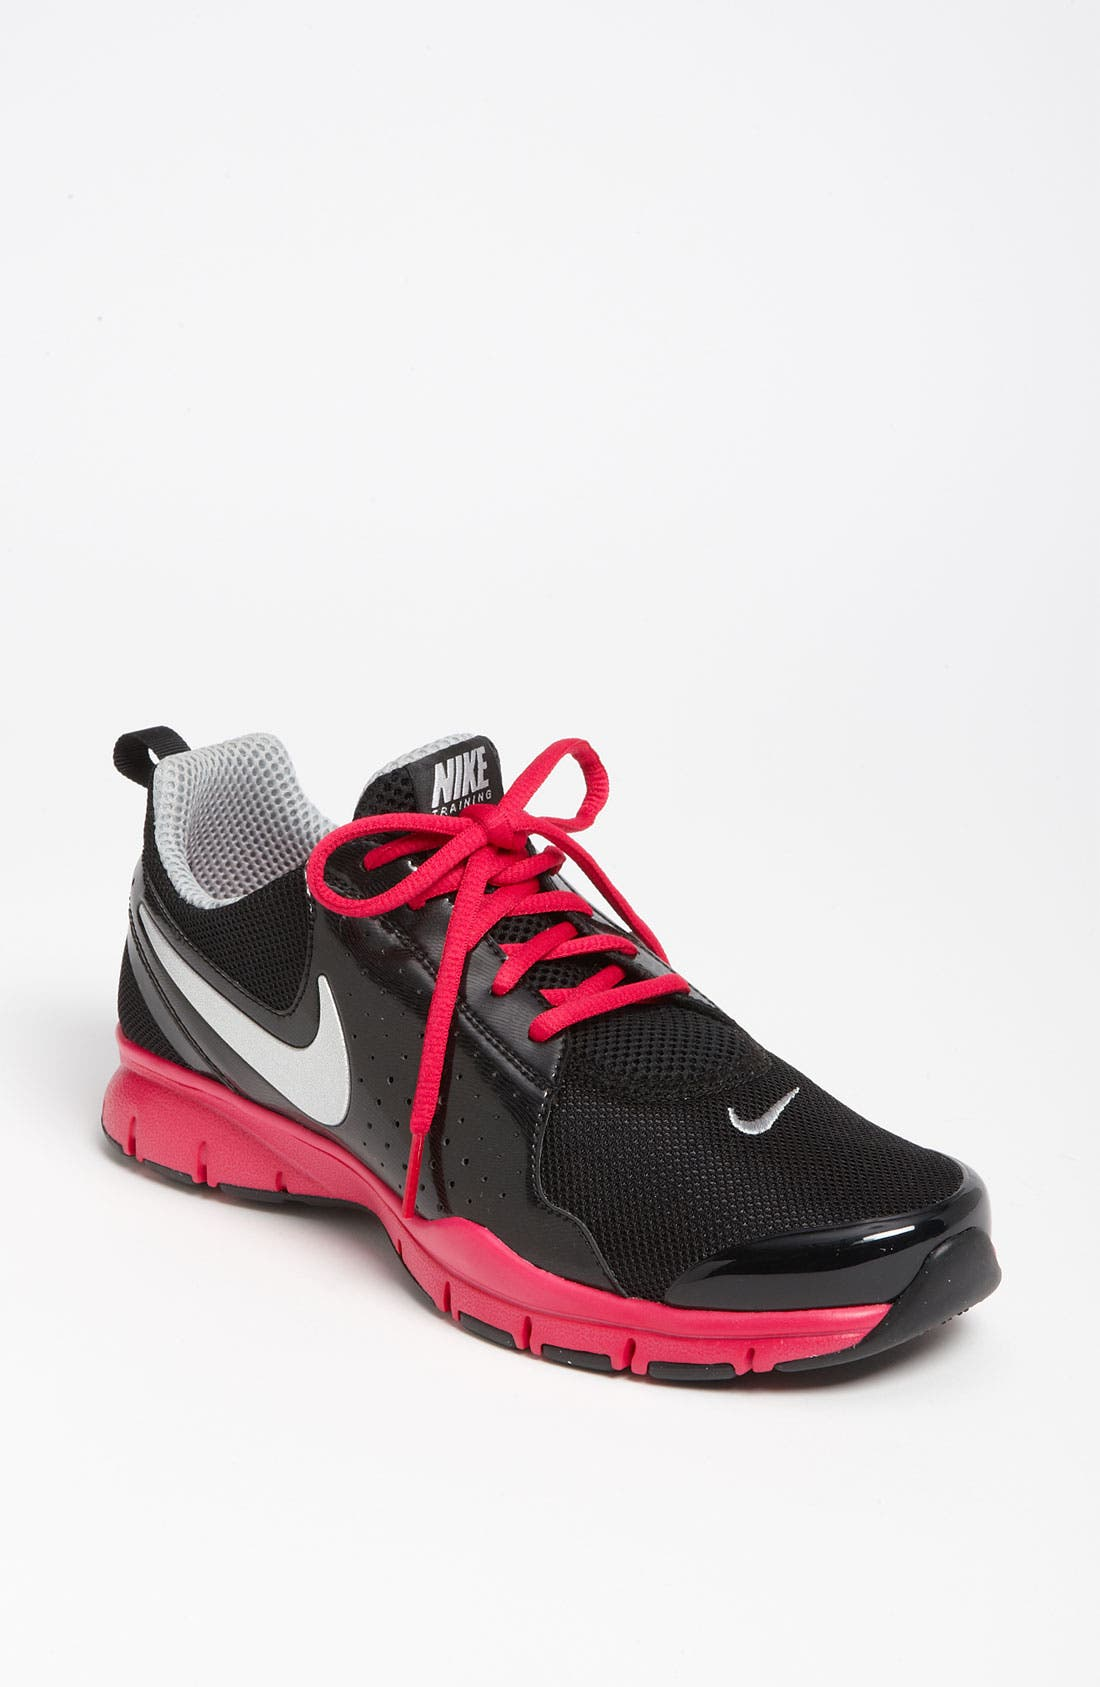 Main Image - Nike 'In Season TR' Training Shoe (Women)